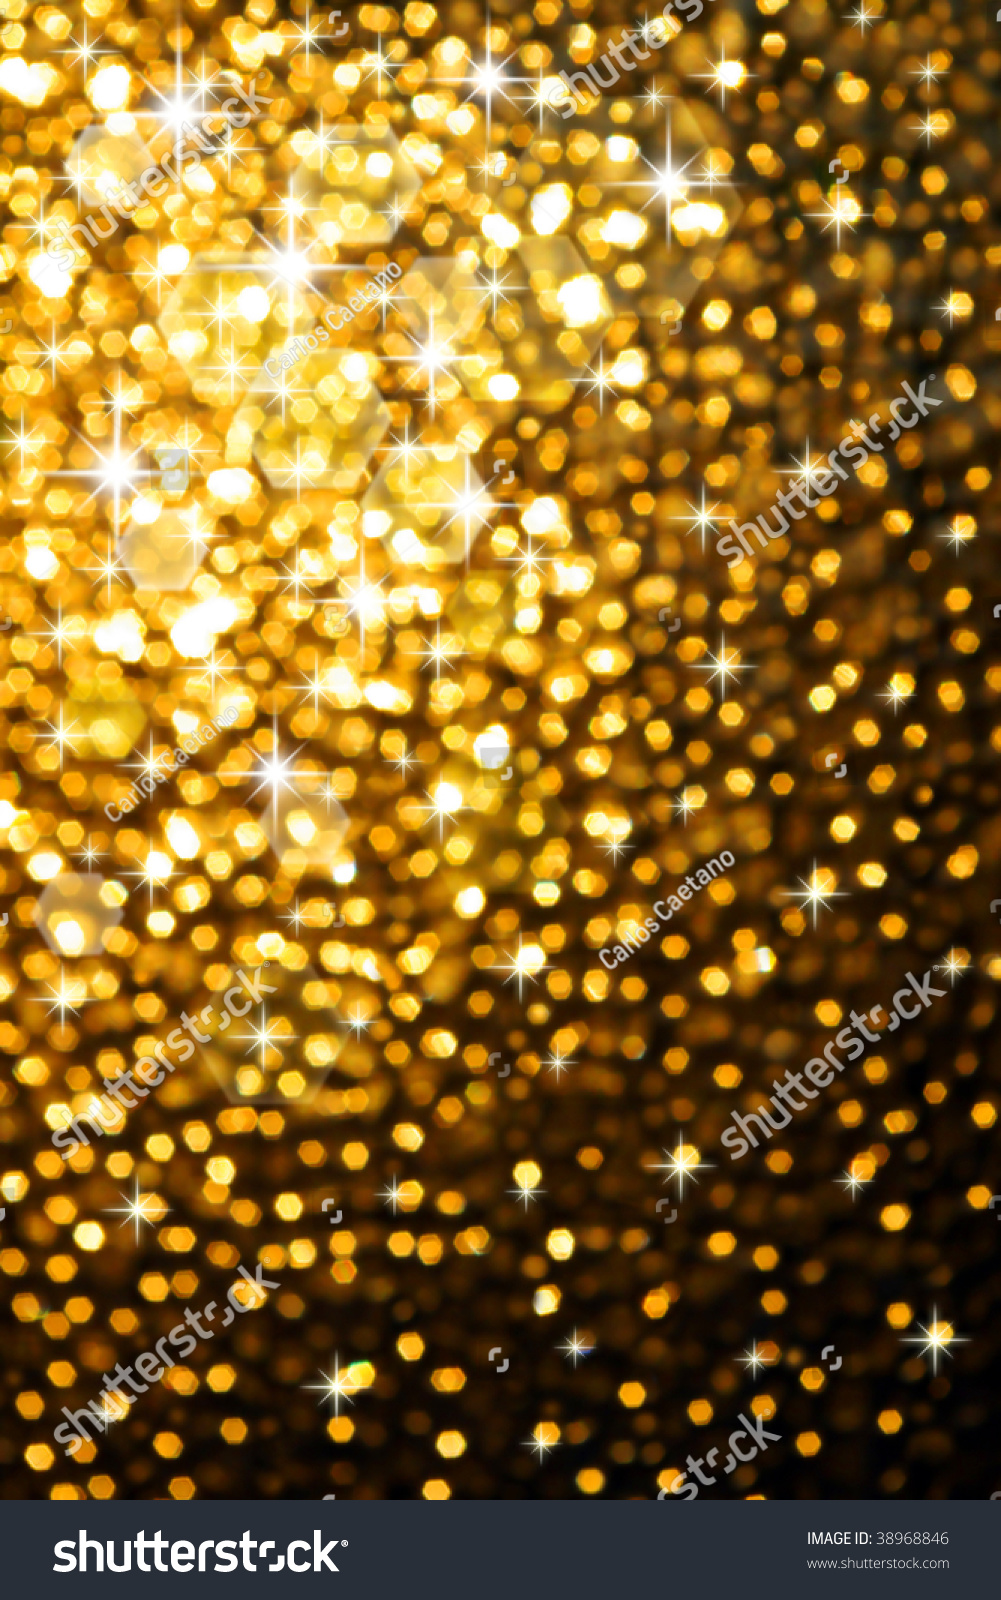 abstract golden background of sparkling christmas lights - Sparkling Christmas Lights